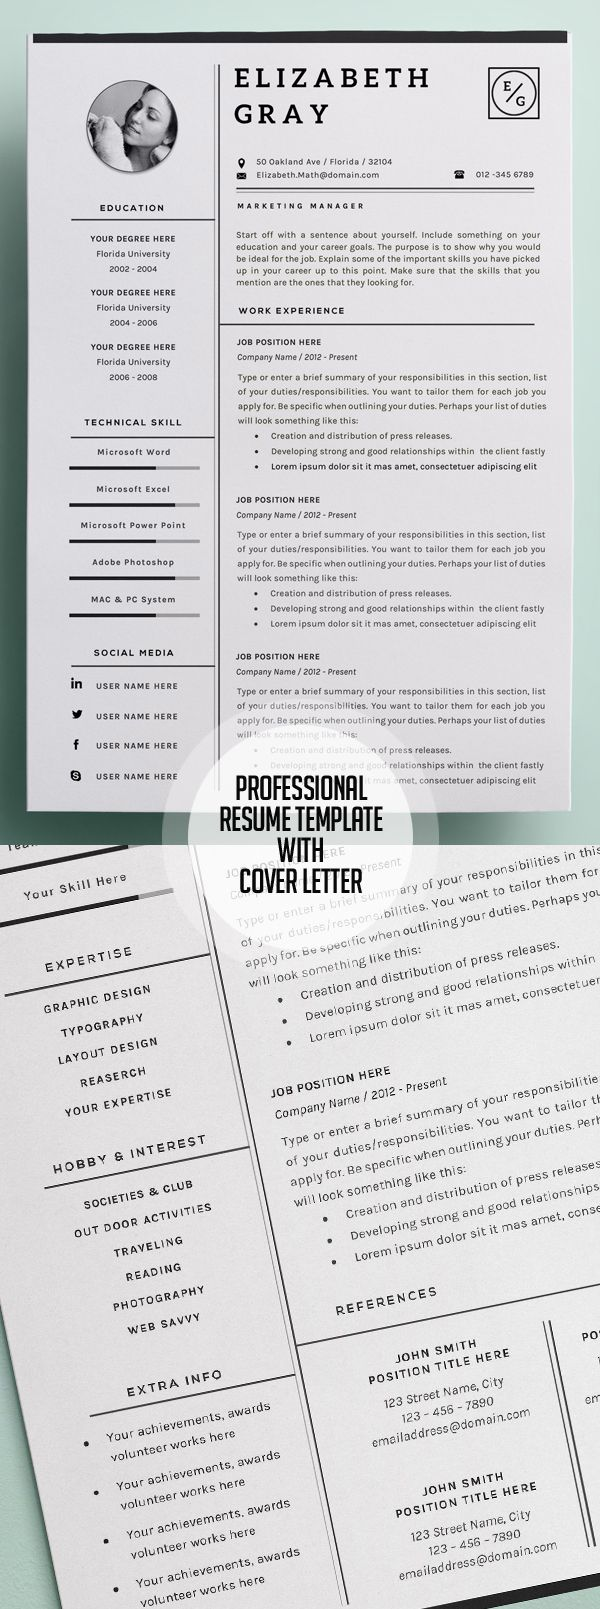 Opposenewapstandardsus  Inspiring  Resume Ideas On Pinterest  Resume Resume Templates And  With Magnificent Professional And Modern Resume Template With Page Cover Cvtemplate With Amazing Resume Download Template Also Bill Gates Resume In Addition Inventory Manager Resume And Sample Resume Profile As Well As Resume For Graduate School Application Additionally Google Resume Examples From Pinterestcom With Opposenewapstandardsus  Magnificent  Resume Ideas On Pinterest  Resume Resume Templates And  With Amazing Professional And Modern Resume Template With Page Cover Cvtemplate And Inspiring Resume Download Template Also Bill Gates Resume In Addition Inventory Manager Resume From Pinterestcom